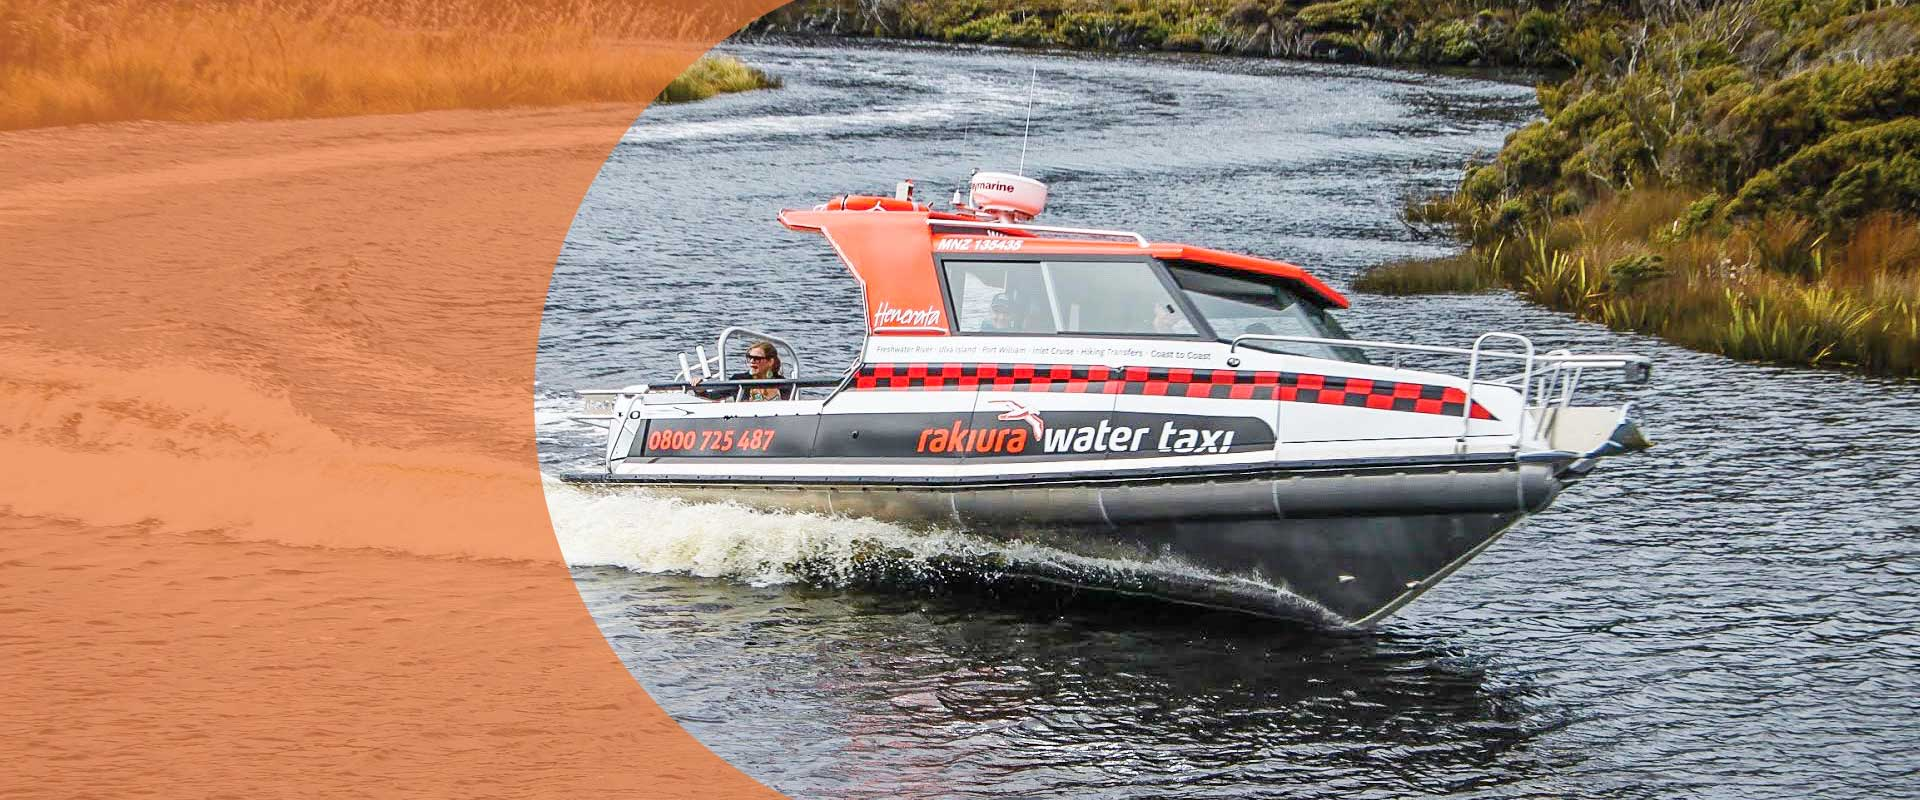 Rakiura Charters & Water Taxis - Discover New Zealand's Stewart Island... your way! - Rakiura Charters & Water Taxi, Stewart Island, New Zealand